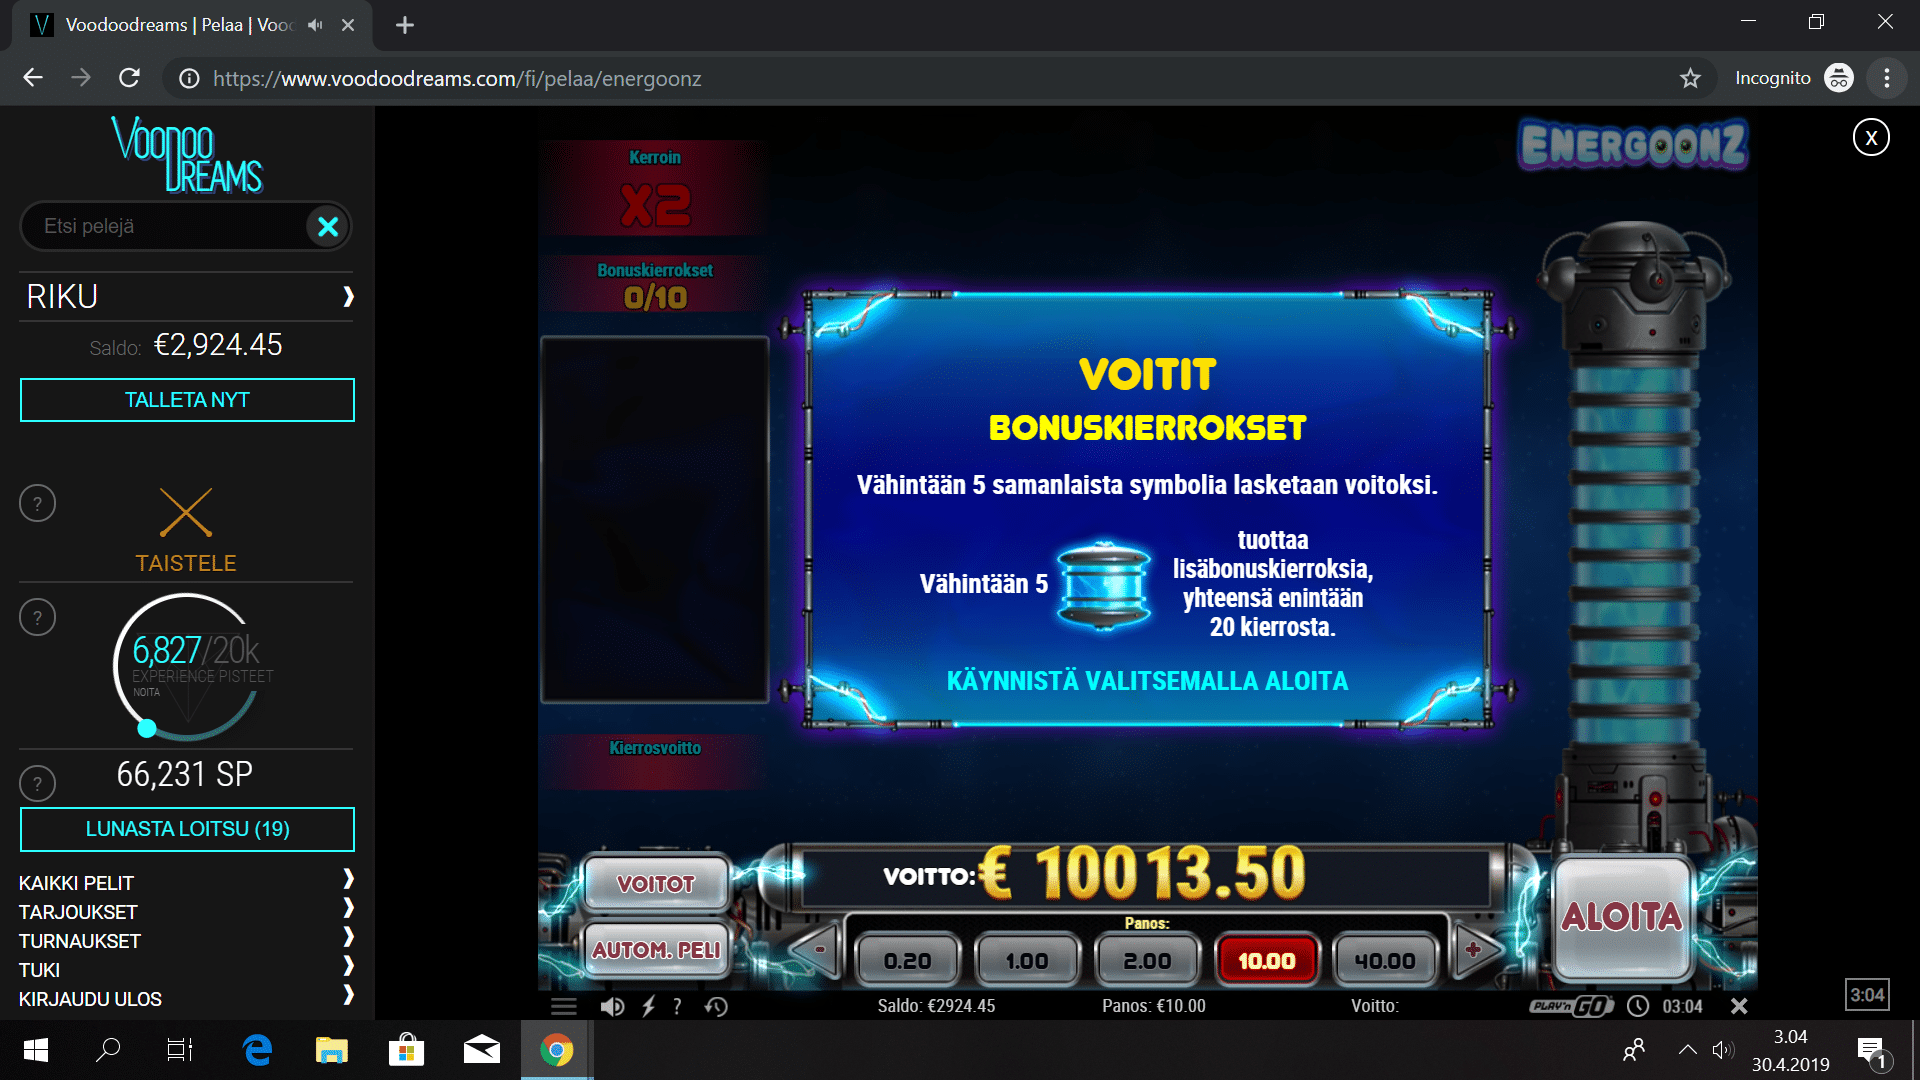 Energoonz slot big win picture